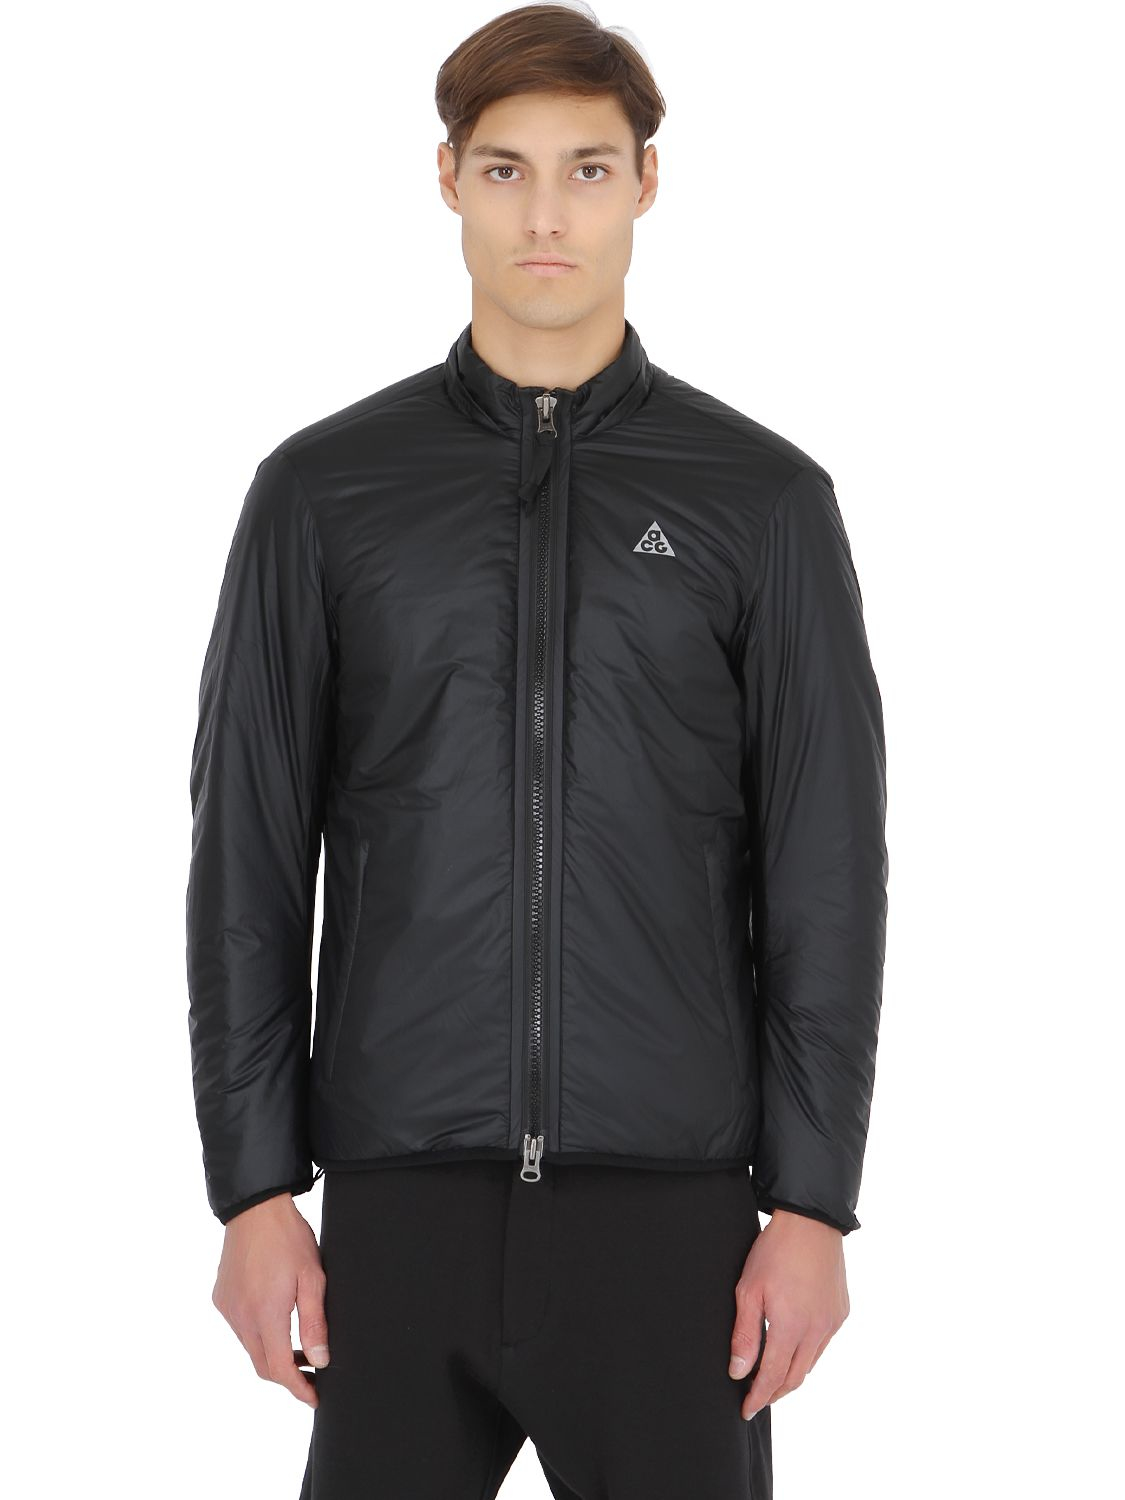 Nike Acg Gore-tex 2 In 1 System Shell Jacket in Navy (Blue) for Men